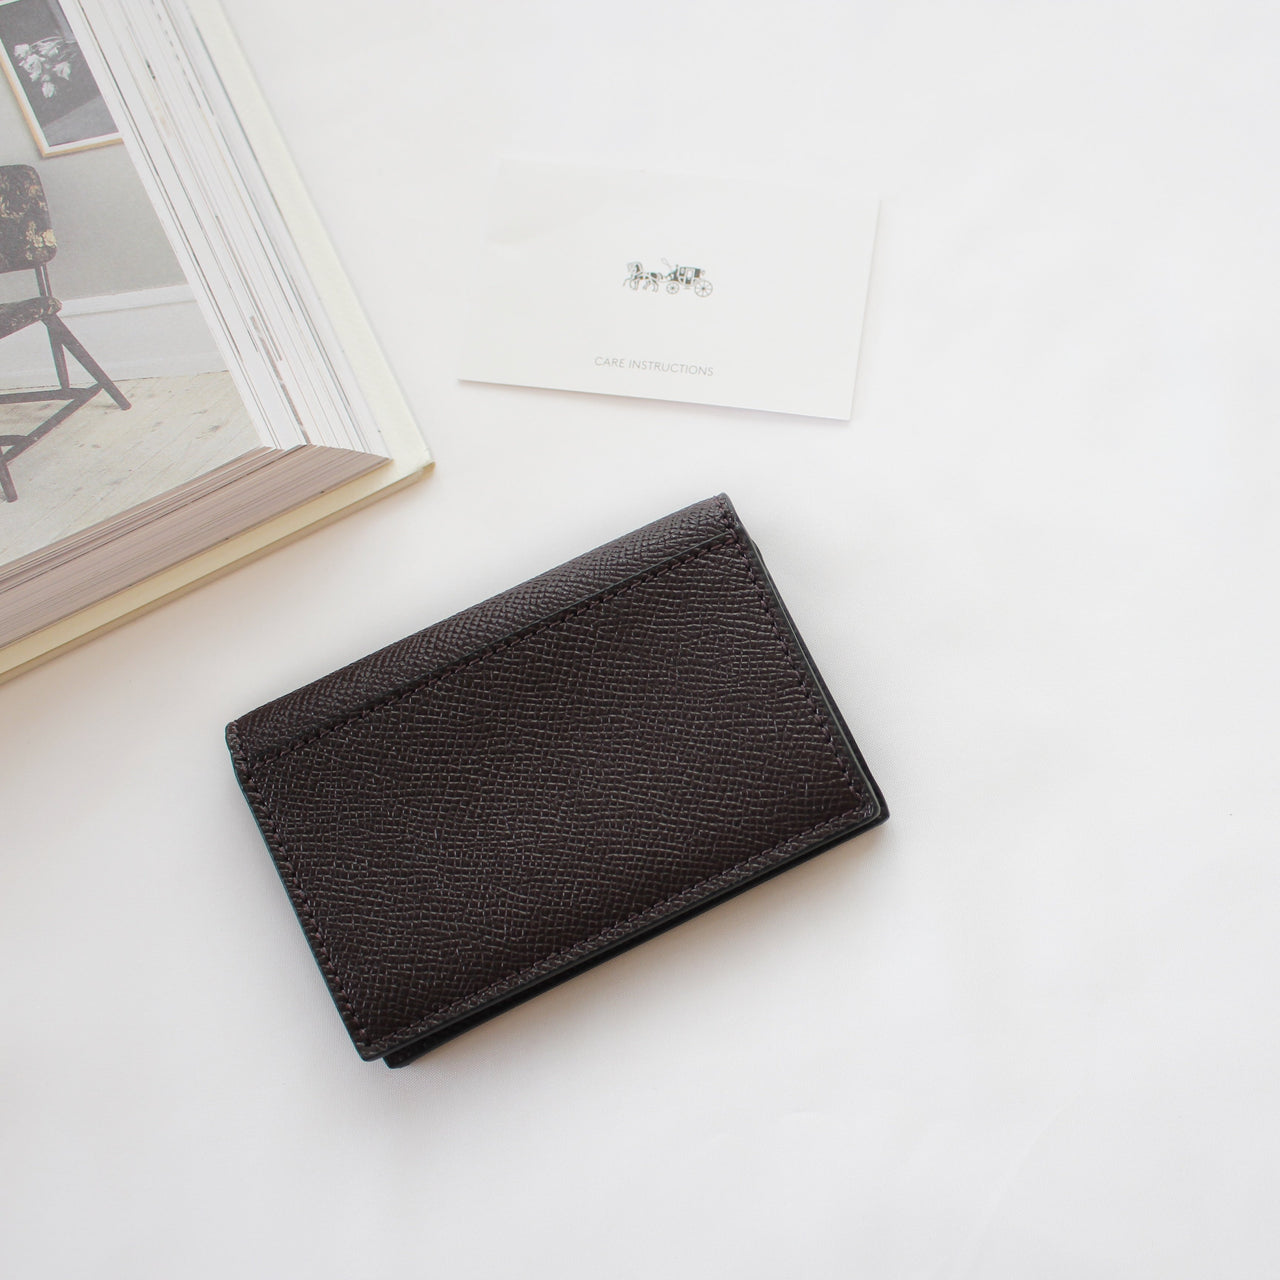 COACH BIFOLD CARD CASE IN CROSSGRAIN LEATHER - LovelyMadness Clothing Malaysia